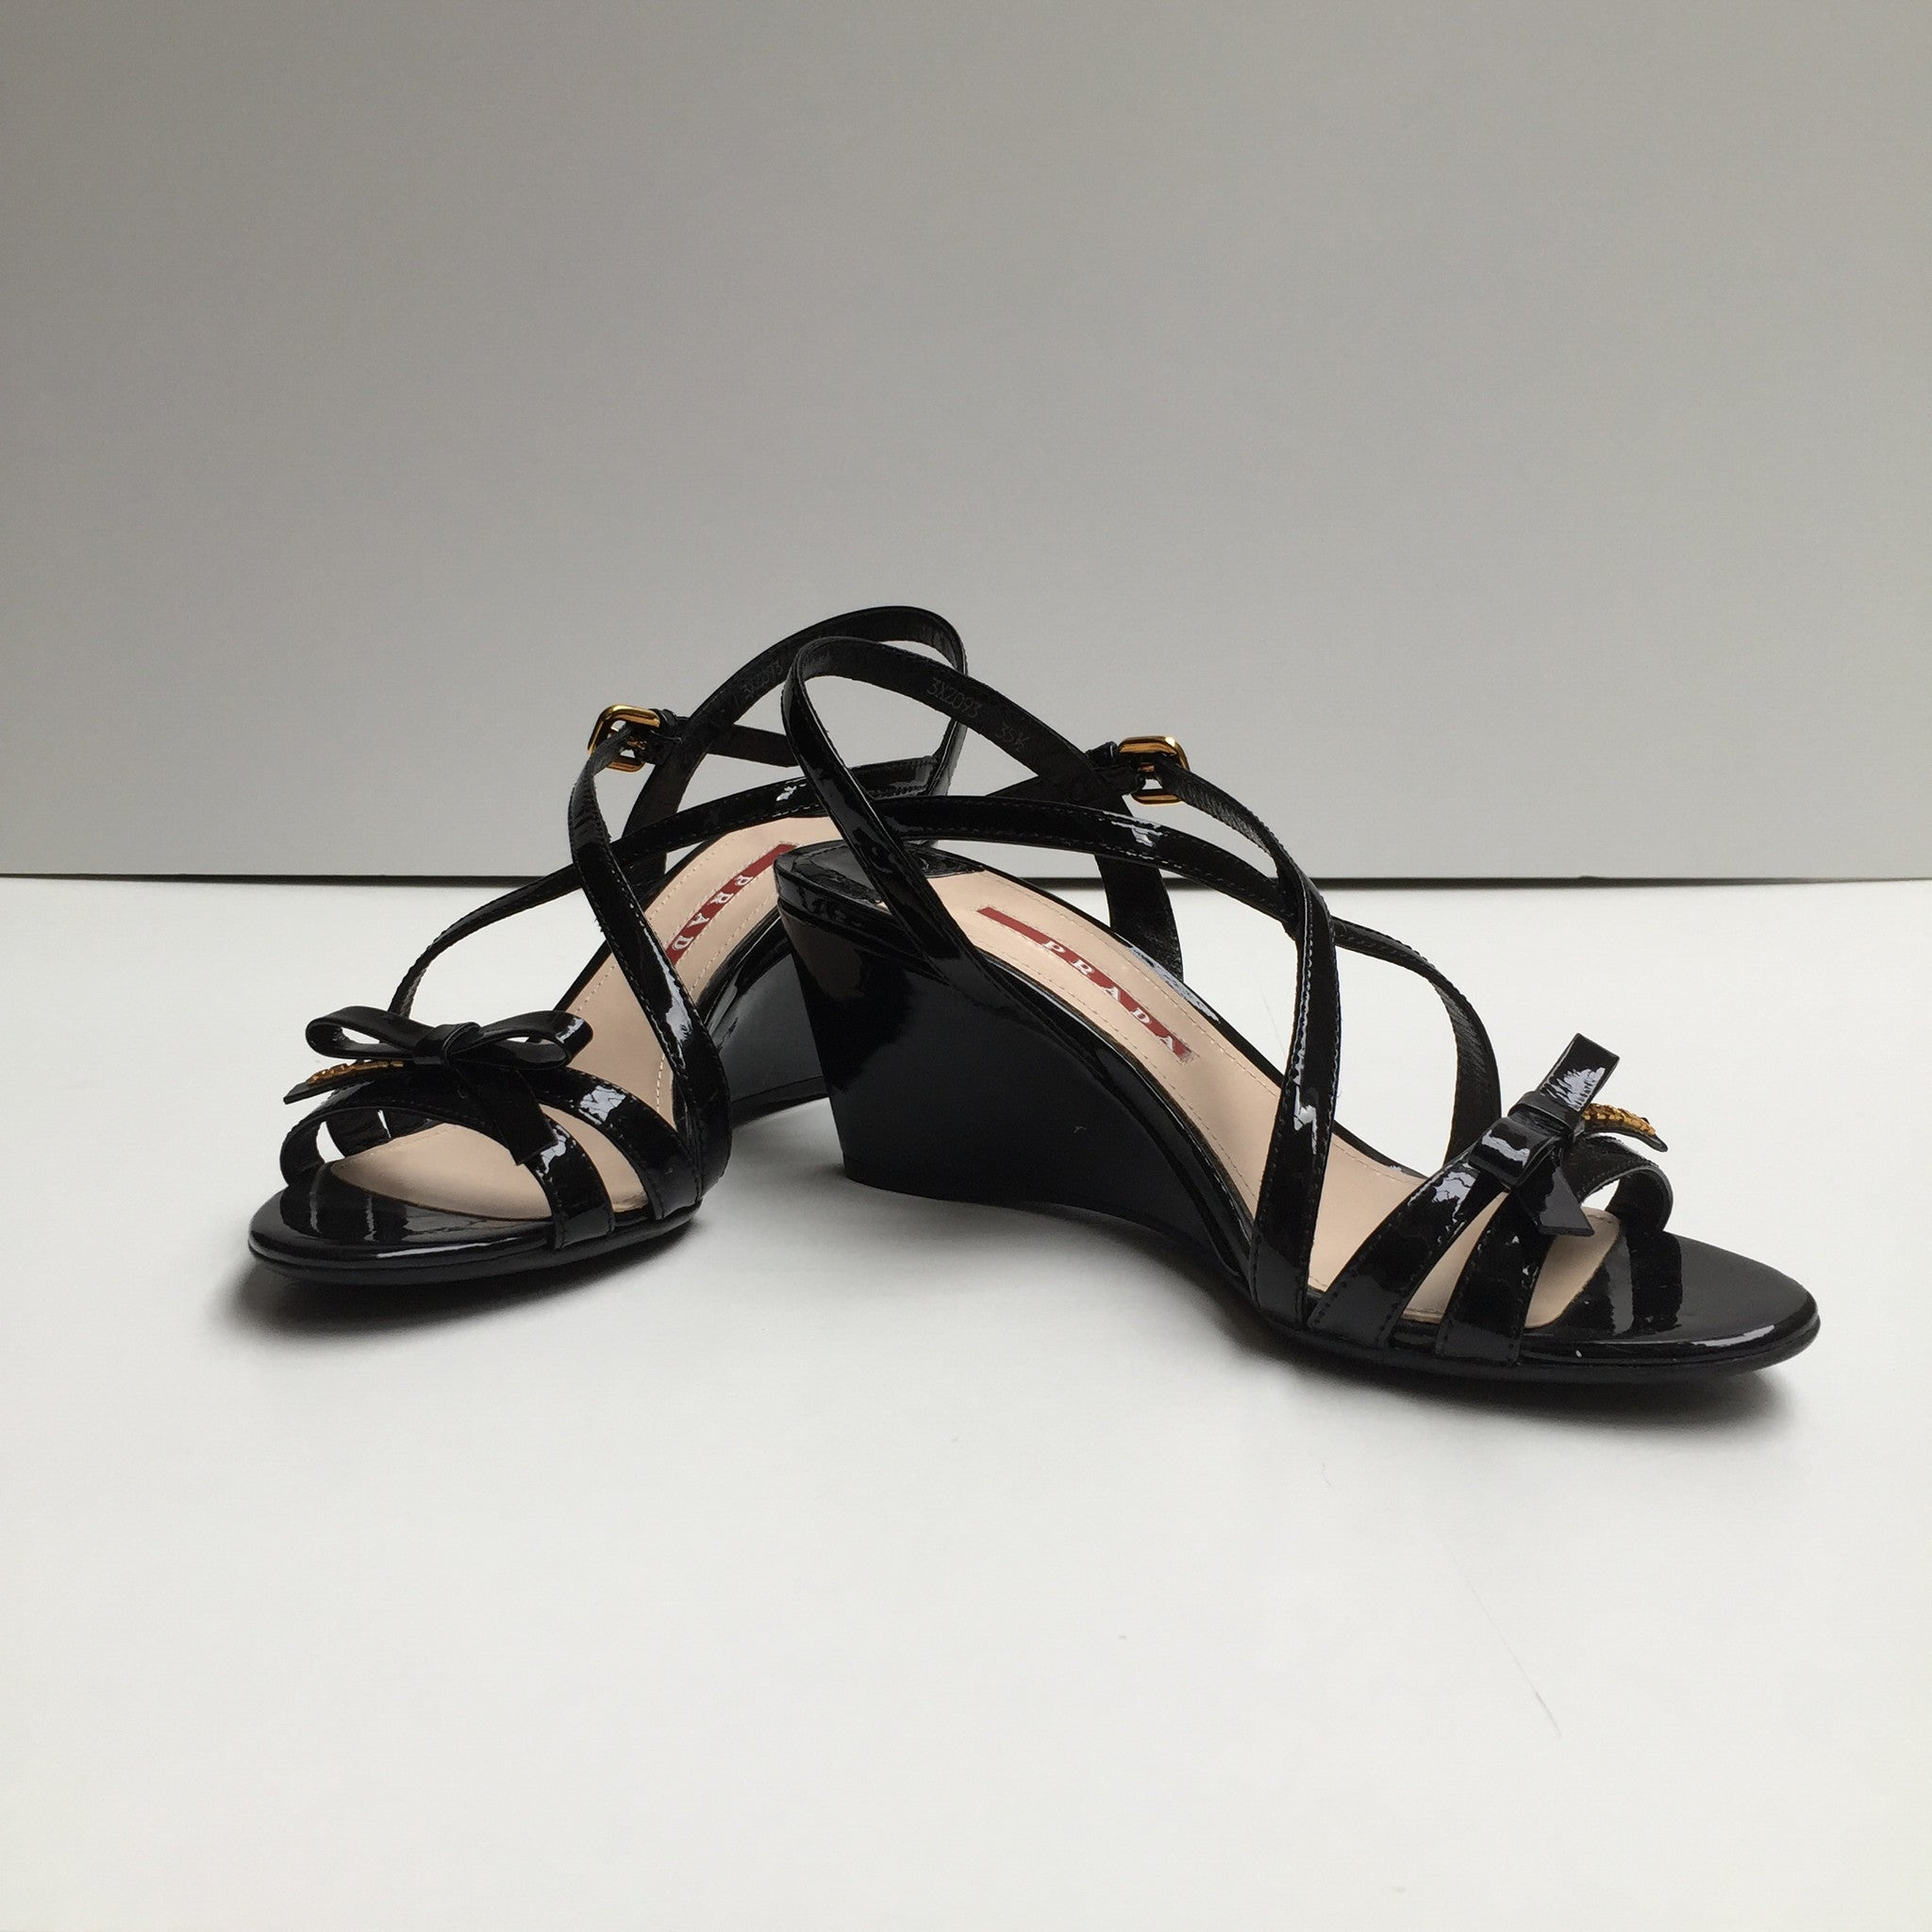 Prada Black Leather Wedge Sandals